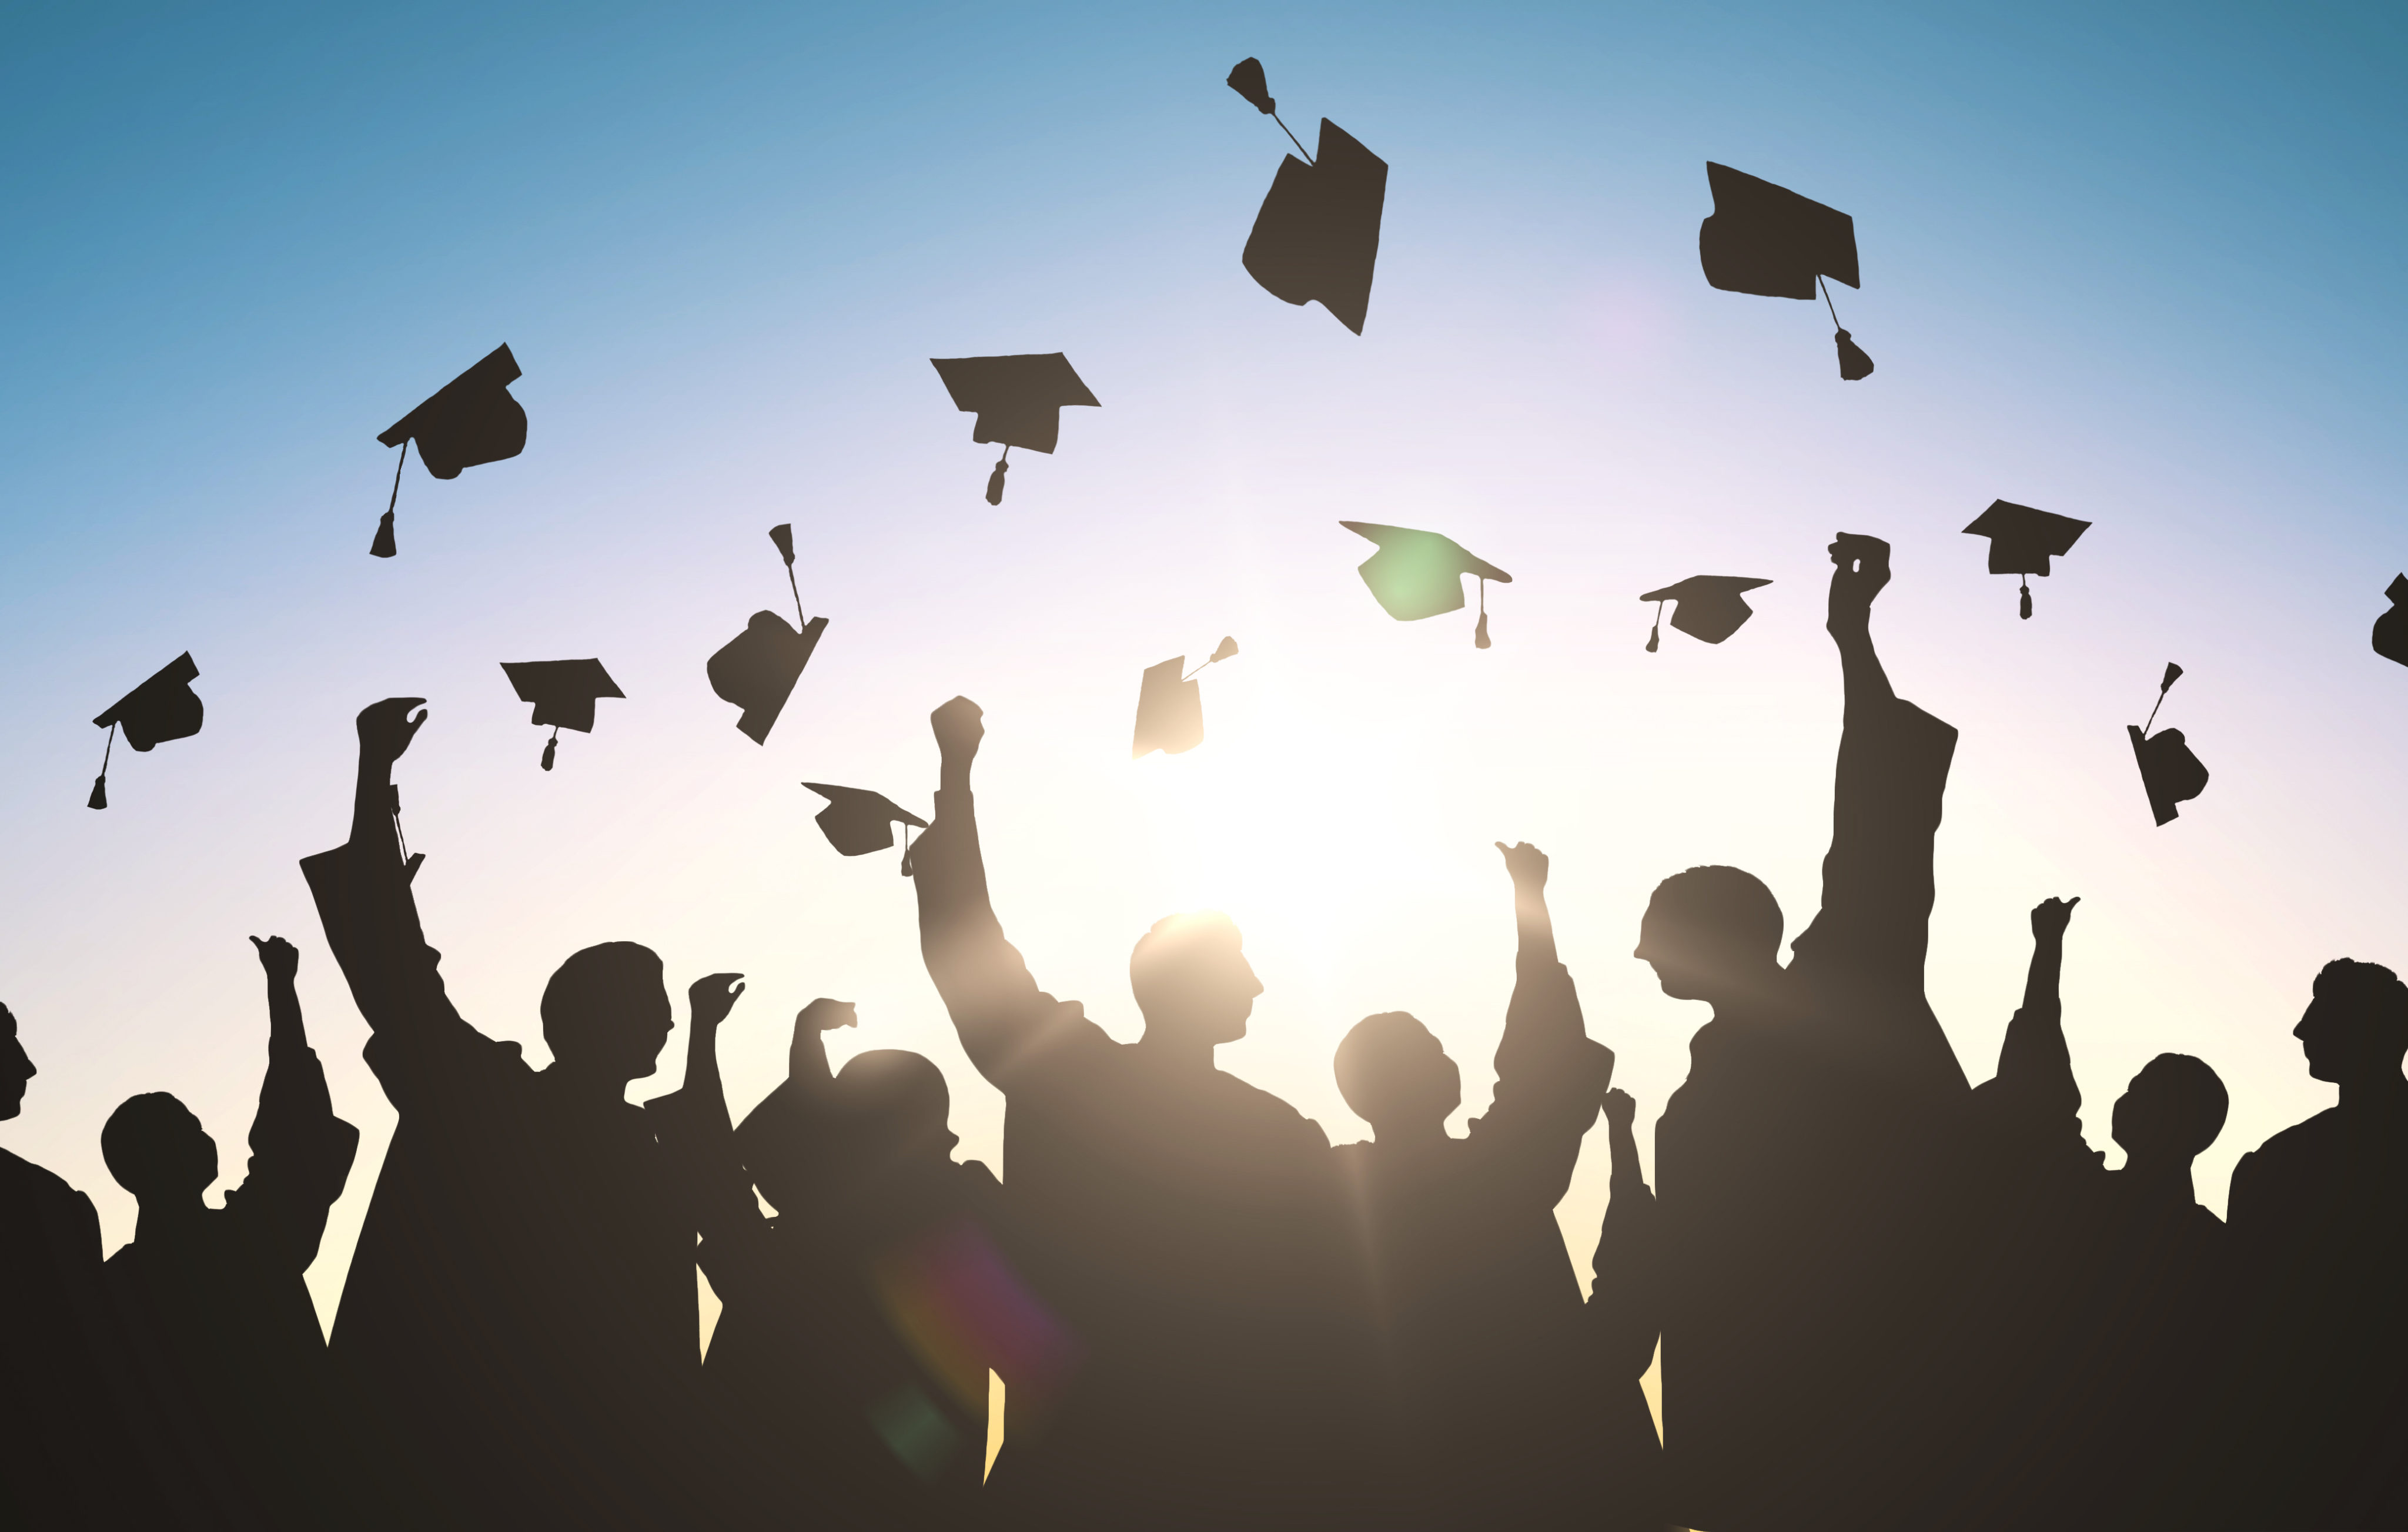 30 Great Graduation Gifts Friendly to Your Budget | Money Talks News